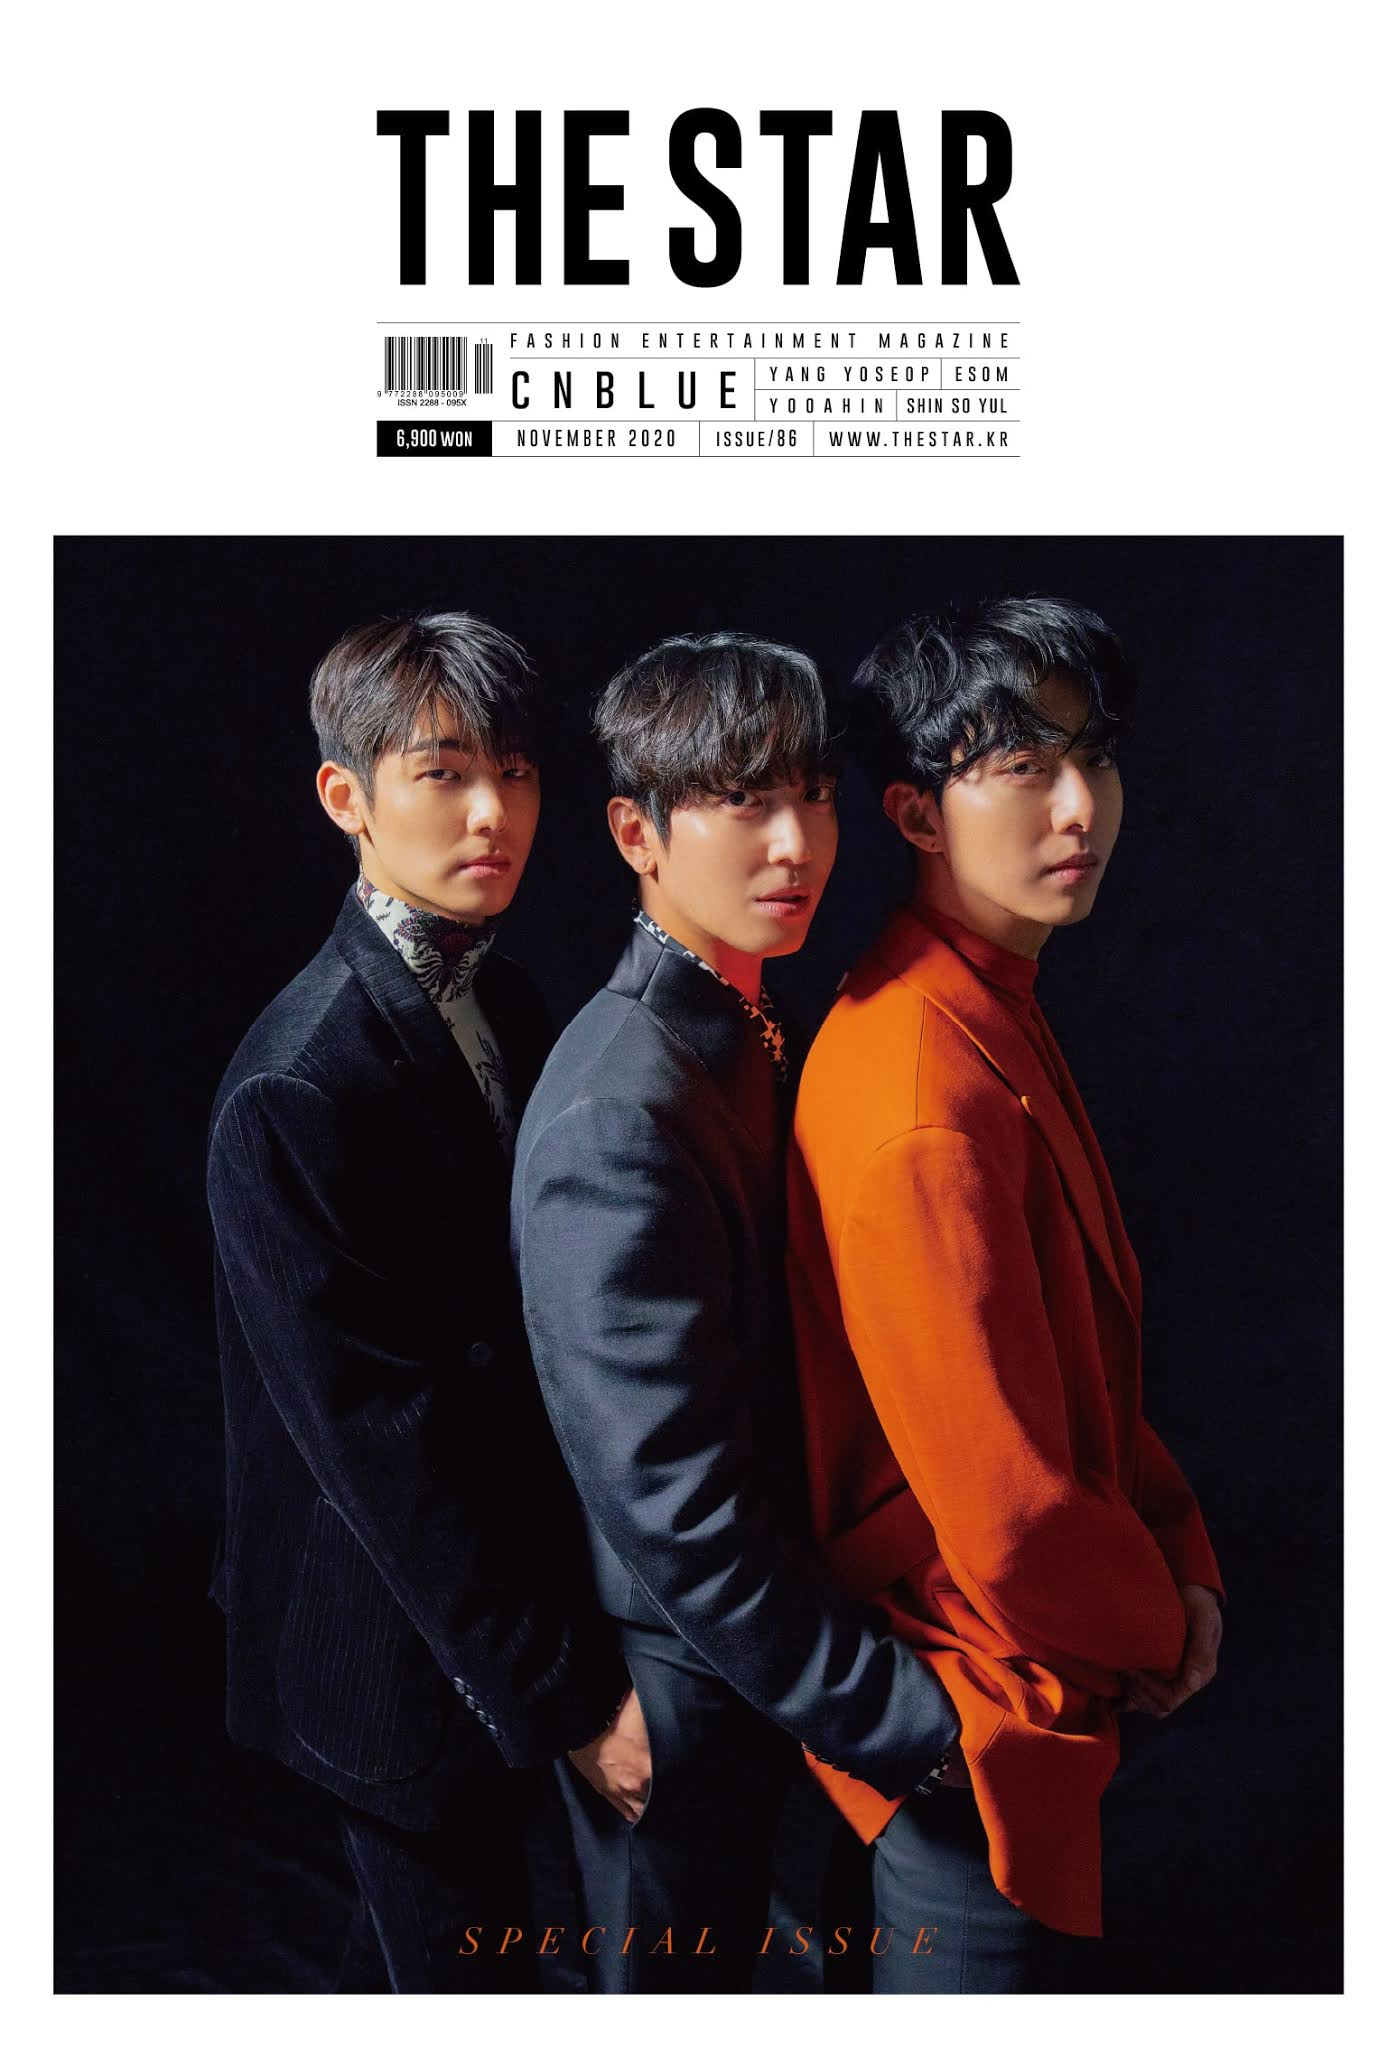 CNBLUE Talks About Preparing for Comeback as Three Members on 'THE STAR' Magazine